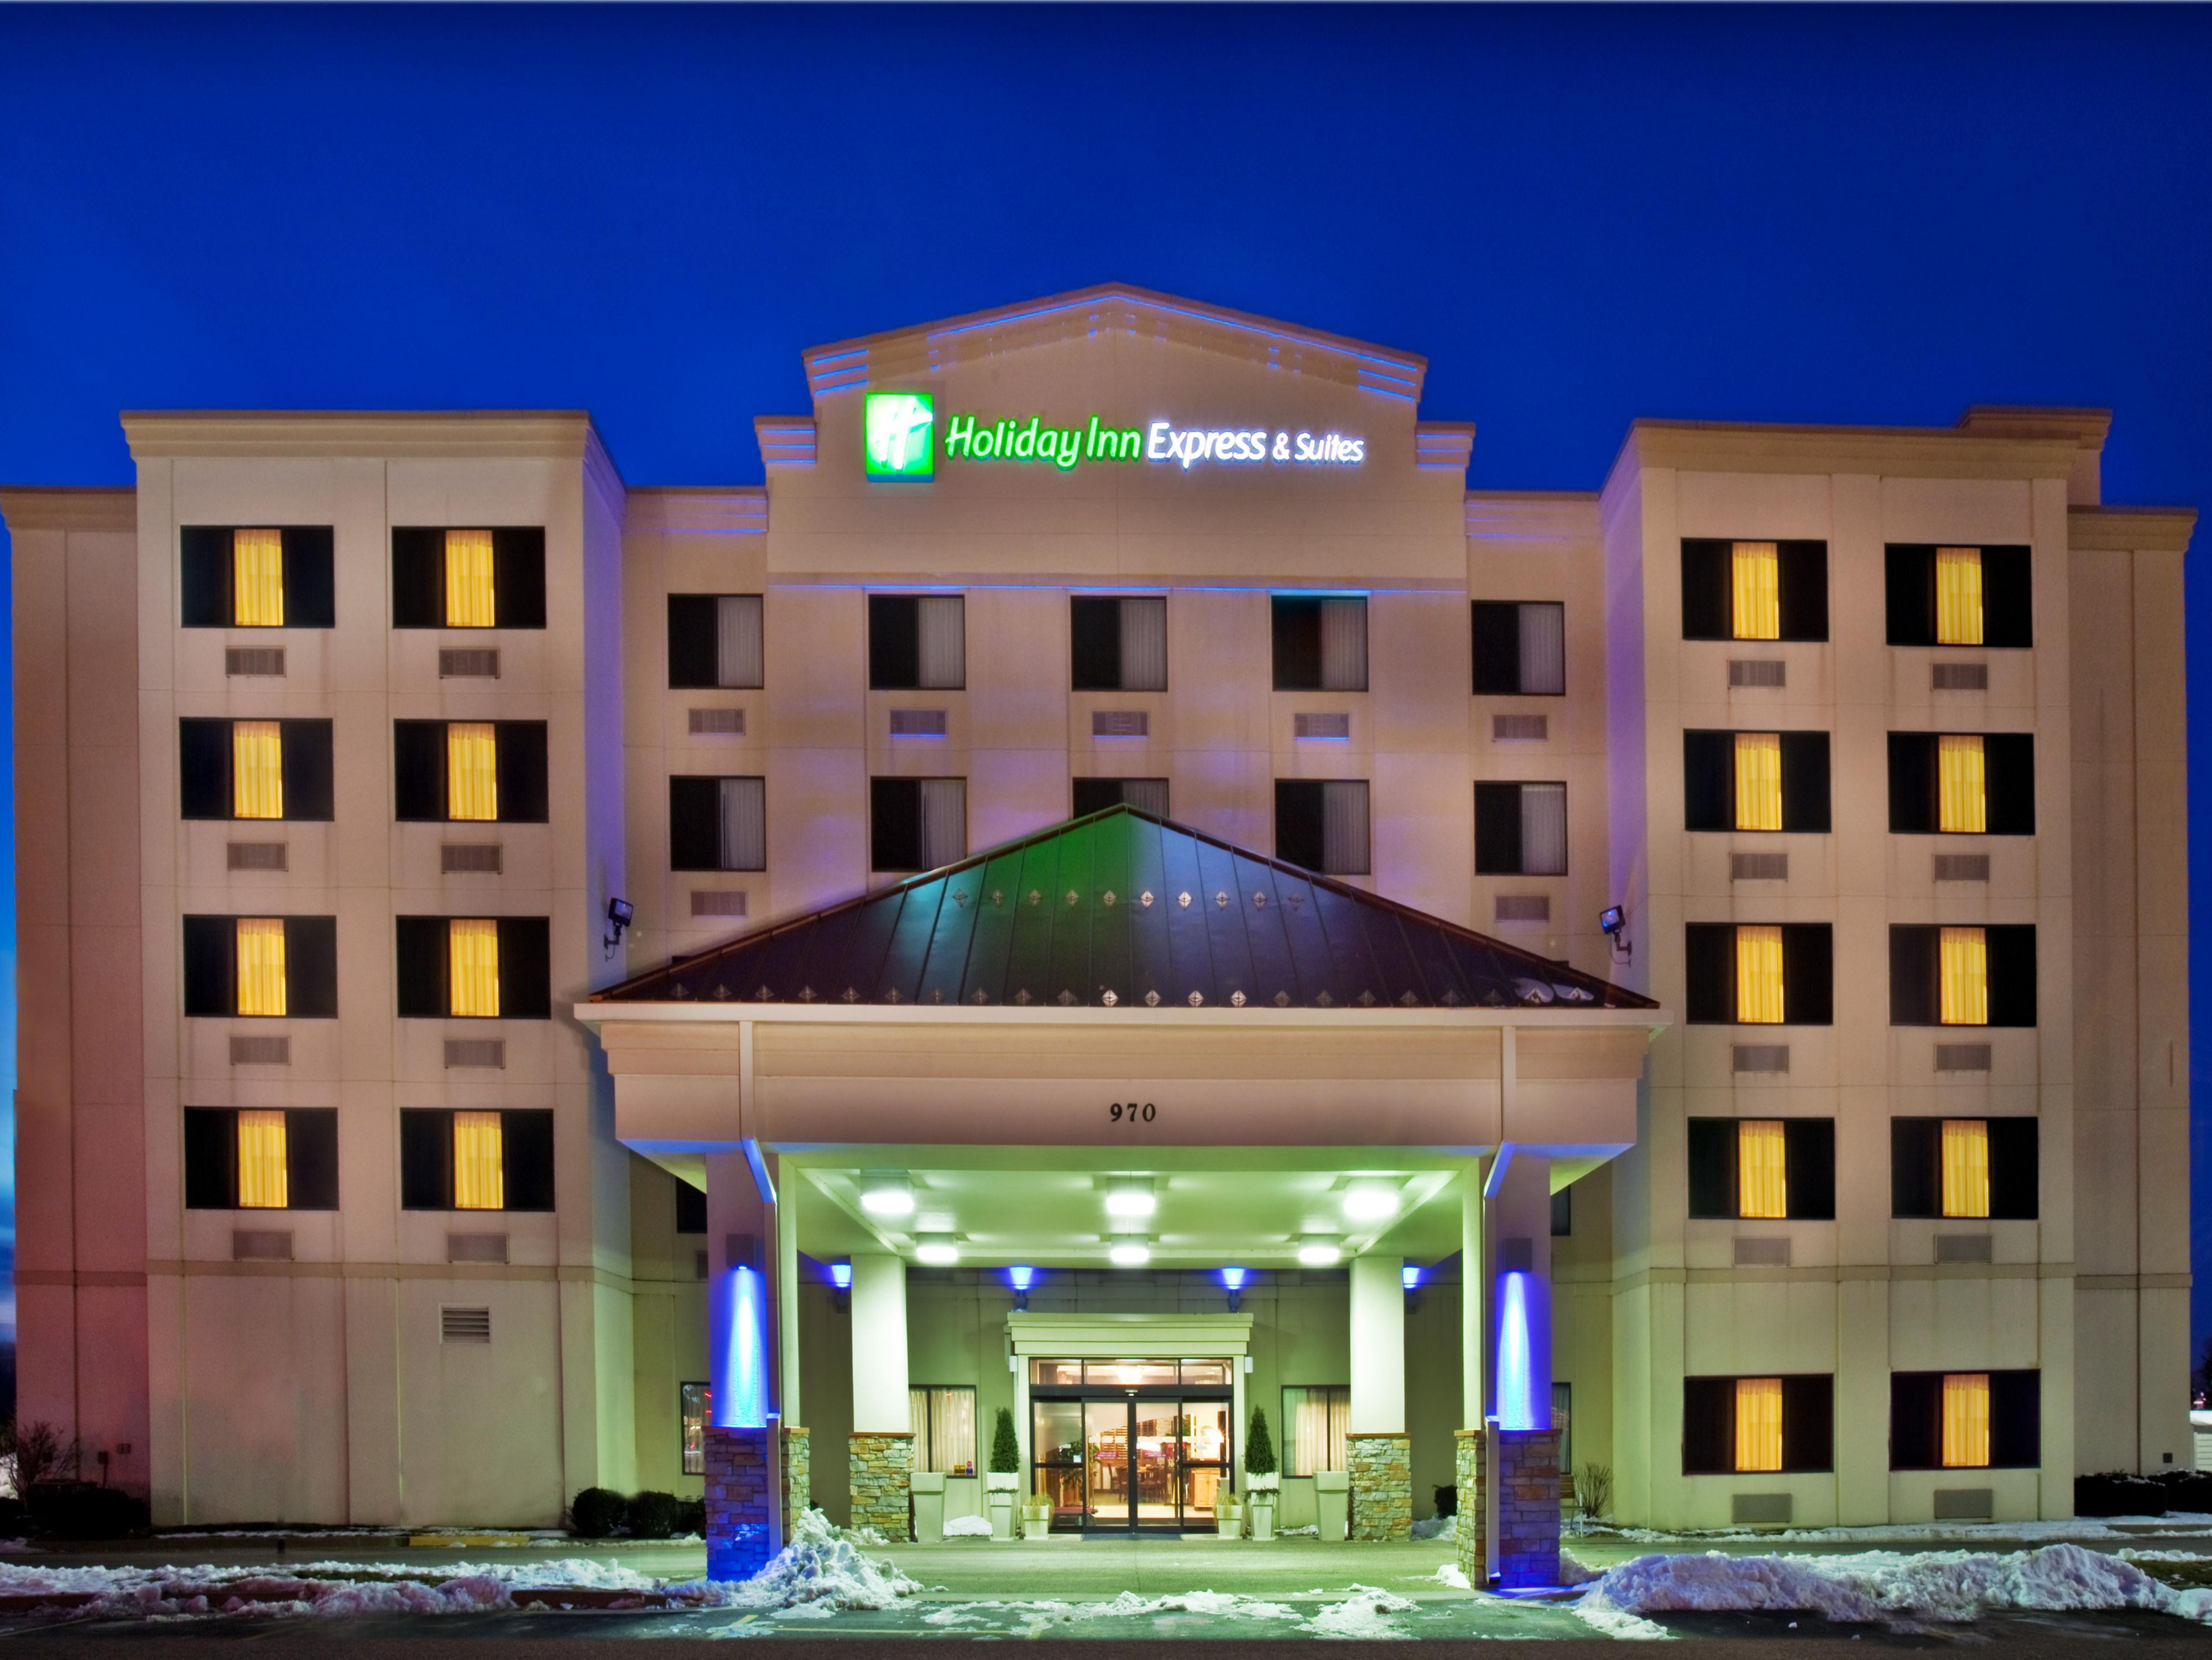 Welcome to the Holiday Inn Express Coralville, Iowa Hotel!